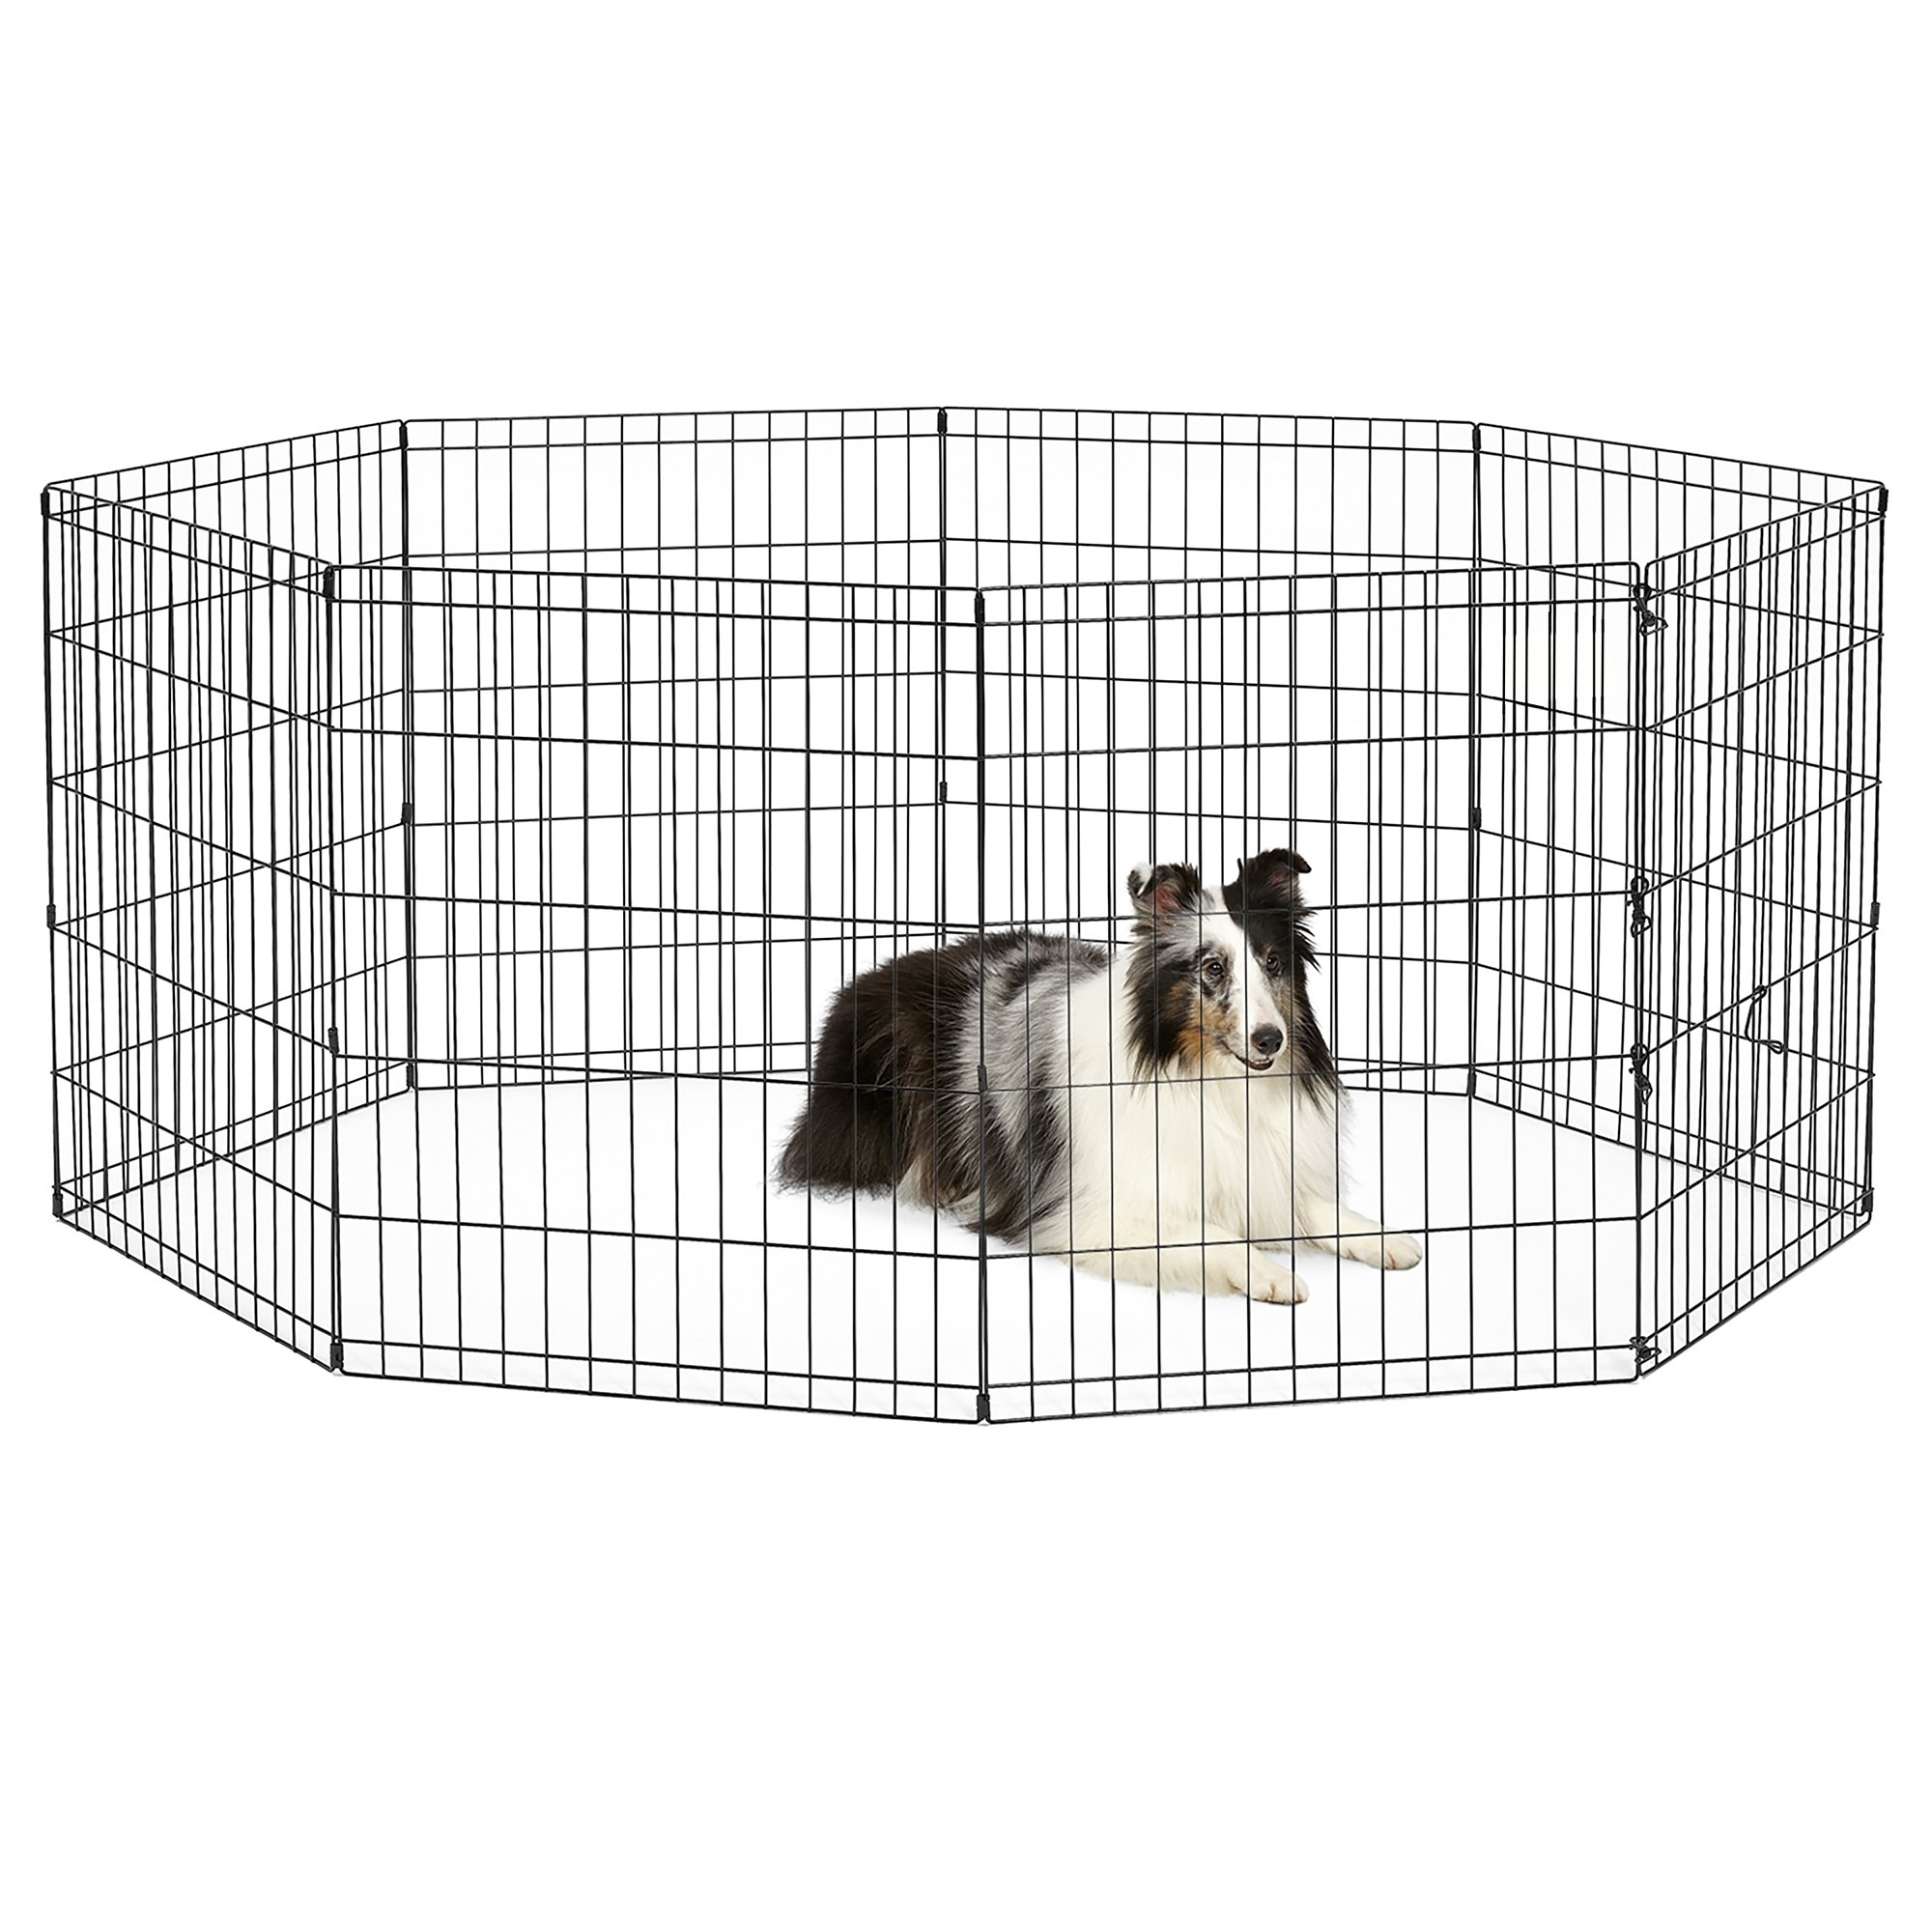 New World Pet Products B552-30 Foldable Exercise Pet Playpen, Black, Medium/24'' x 30'' by New World Pet Products